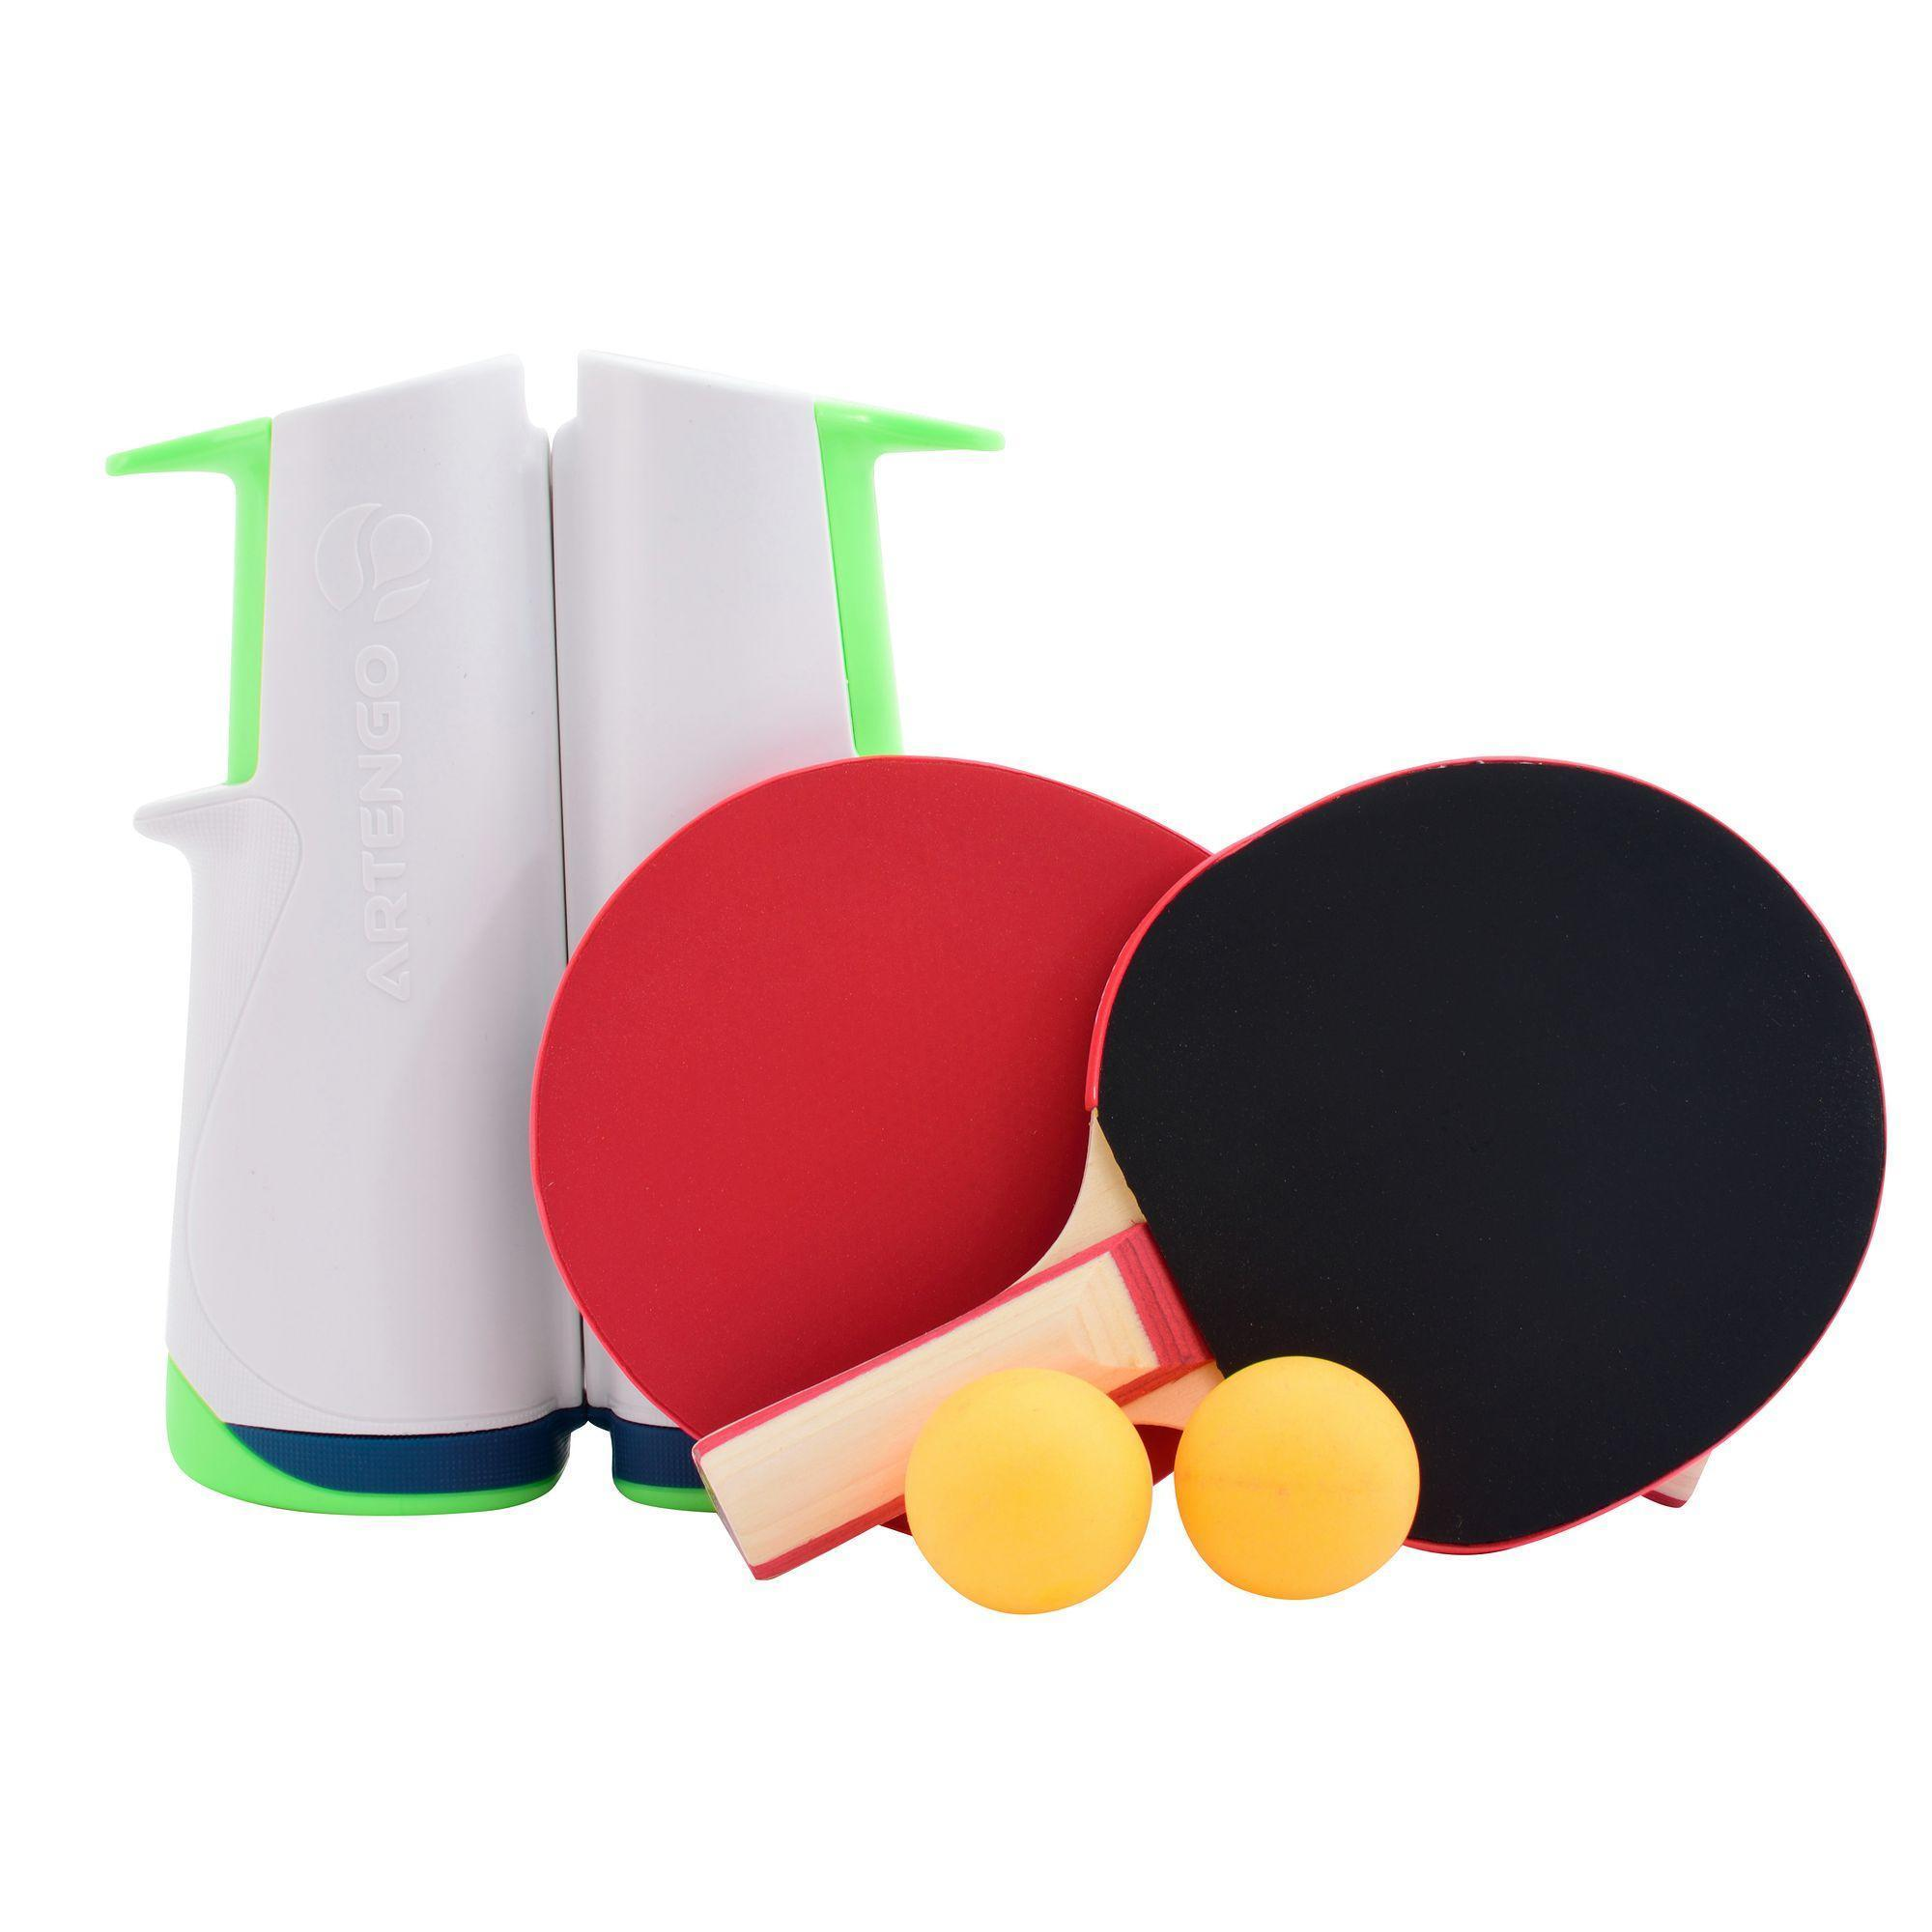 Filet de tennis de table adaptable rollnet 2 petites - Revetement de raquette de tennis de table ...